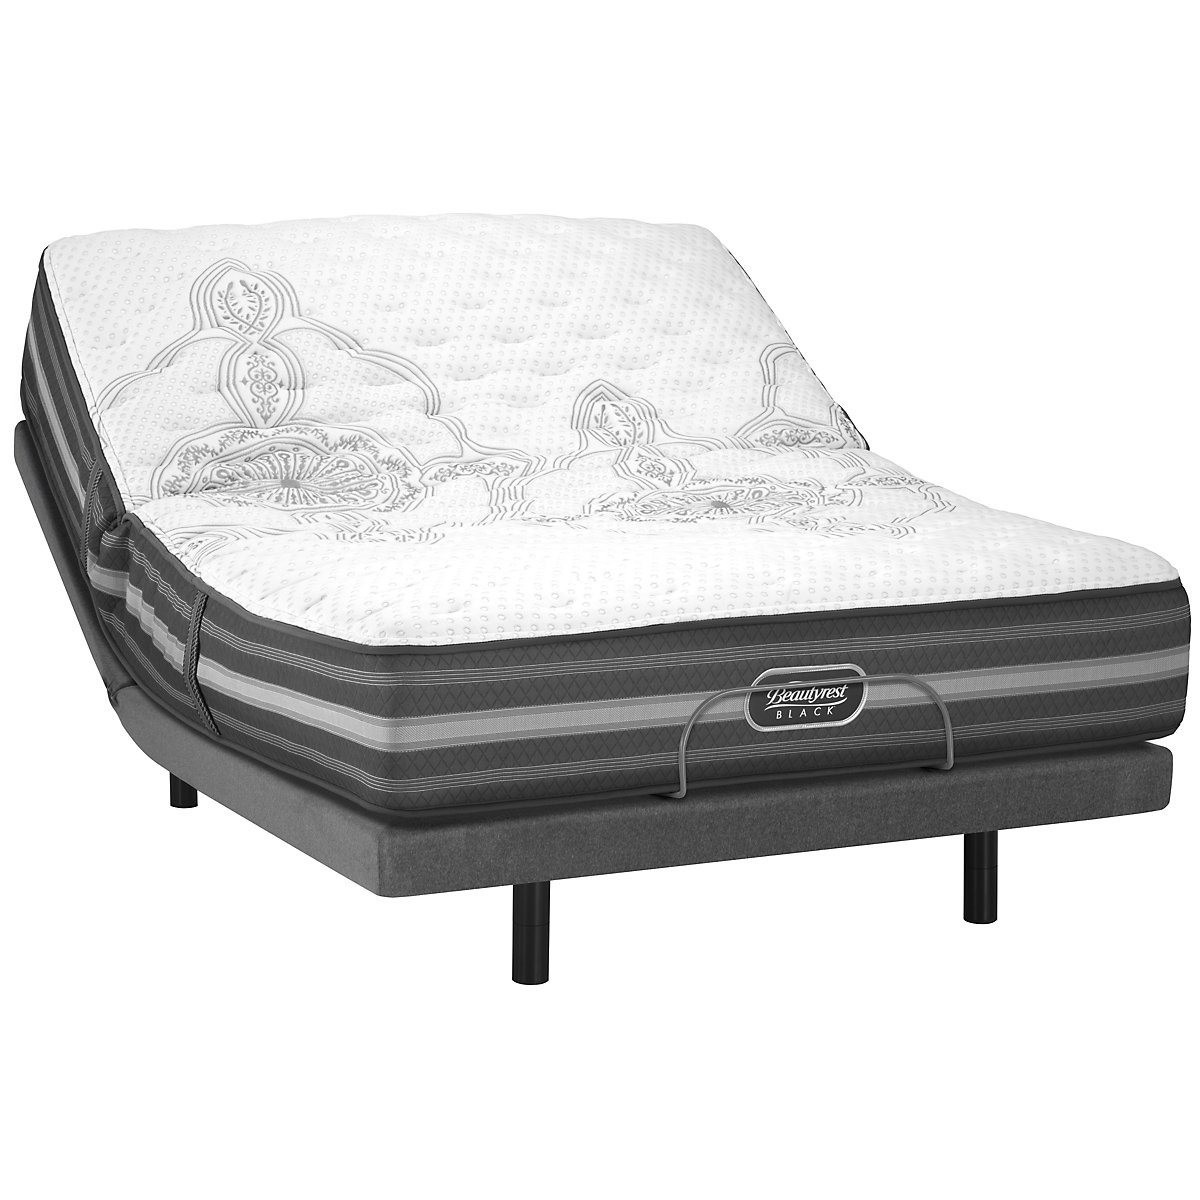 Beautyrest Black Calista Extra Firm Innerspring Elite Adjustable Mattress Set